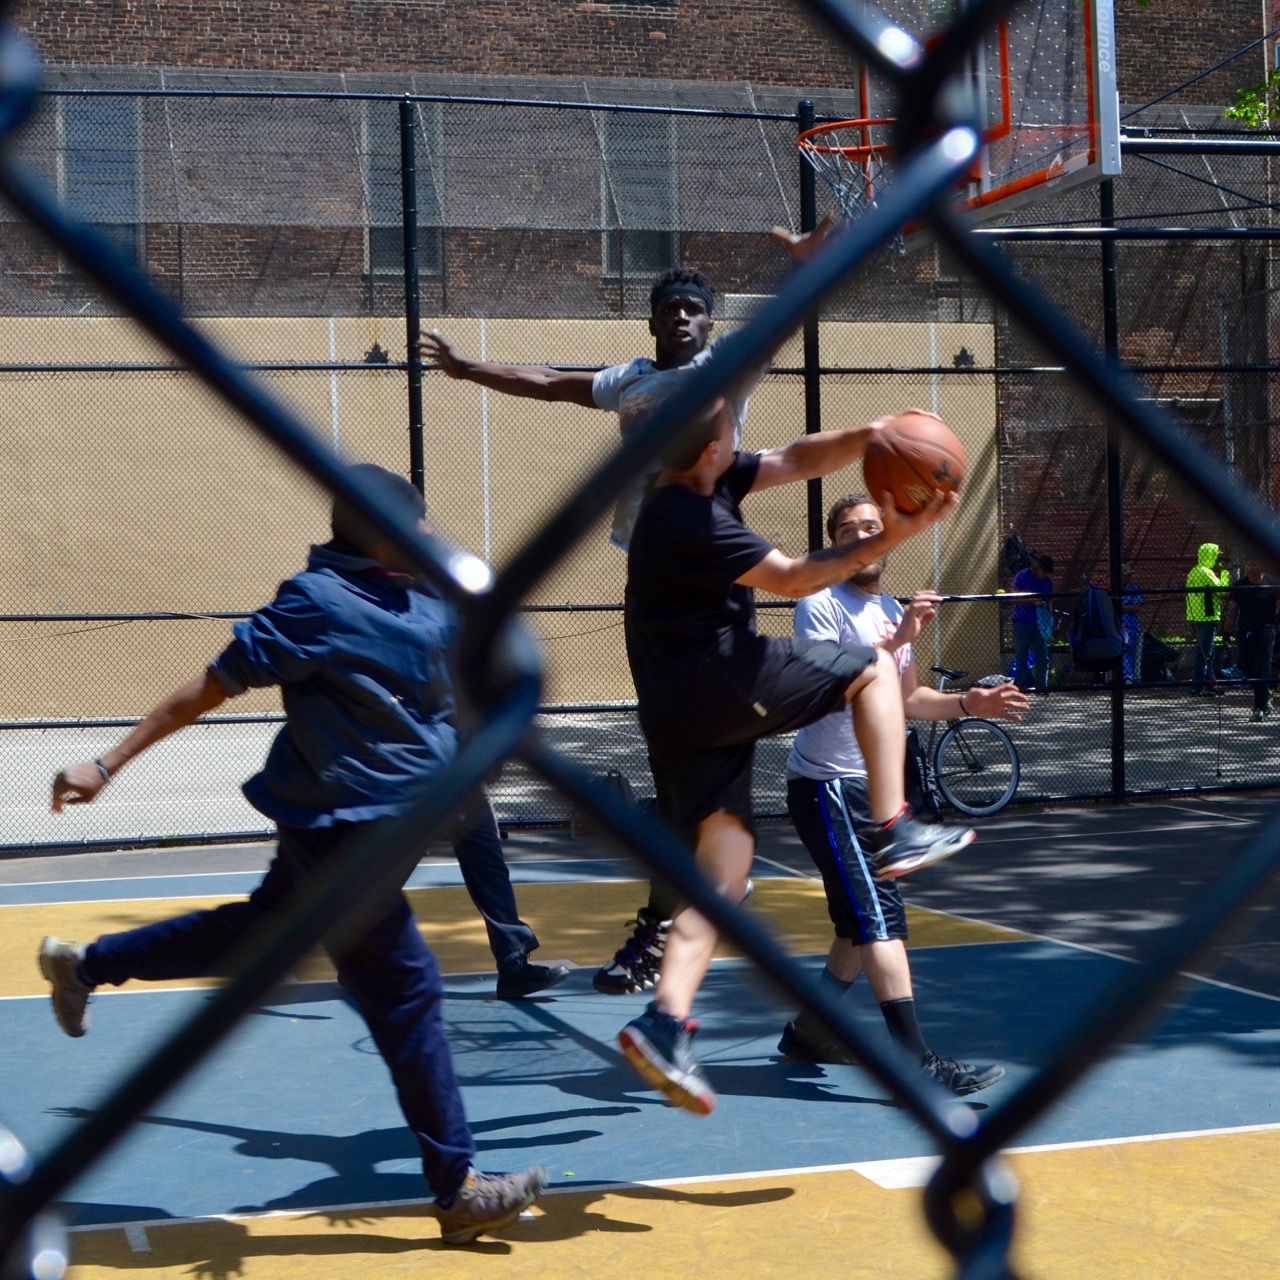 """""""The Cage"""" basketball court in the Village is half of regulation size. Because it's so compact, the streetball gets physical, fast and intense."""